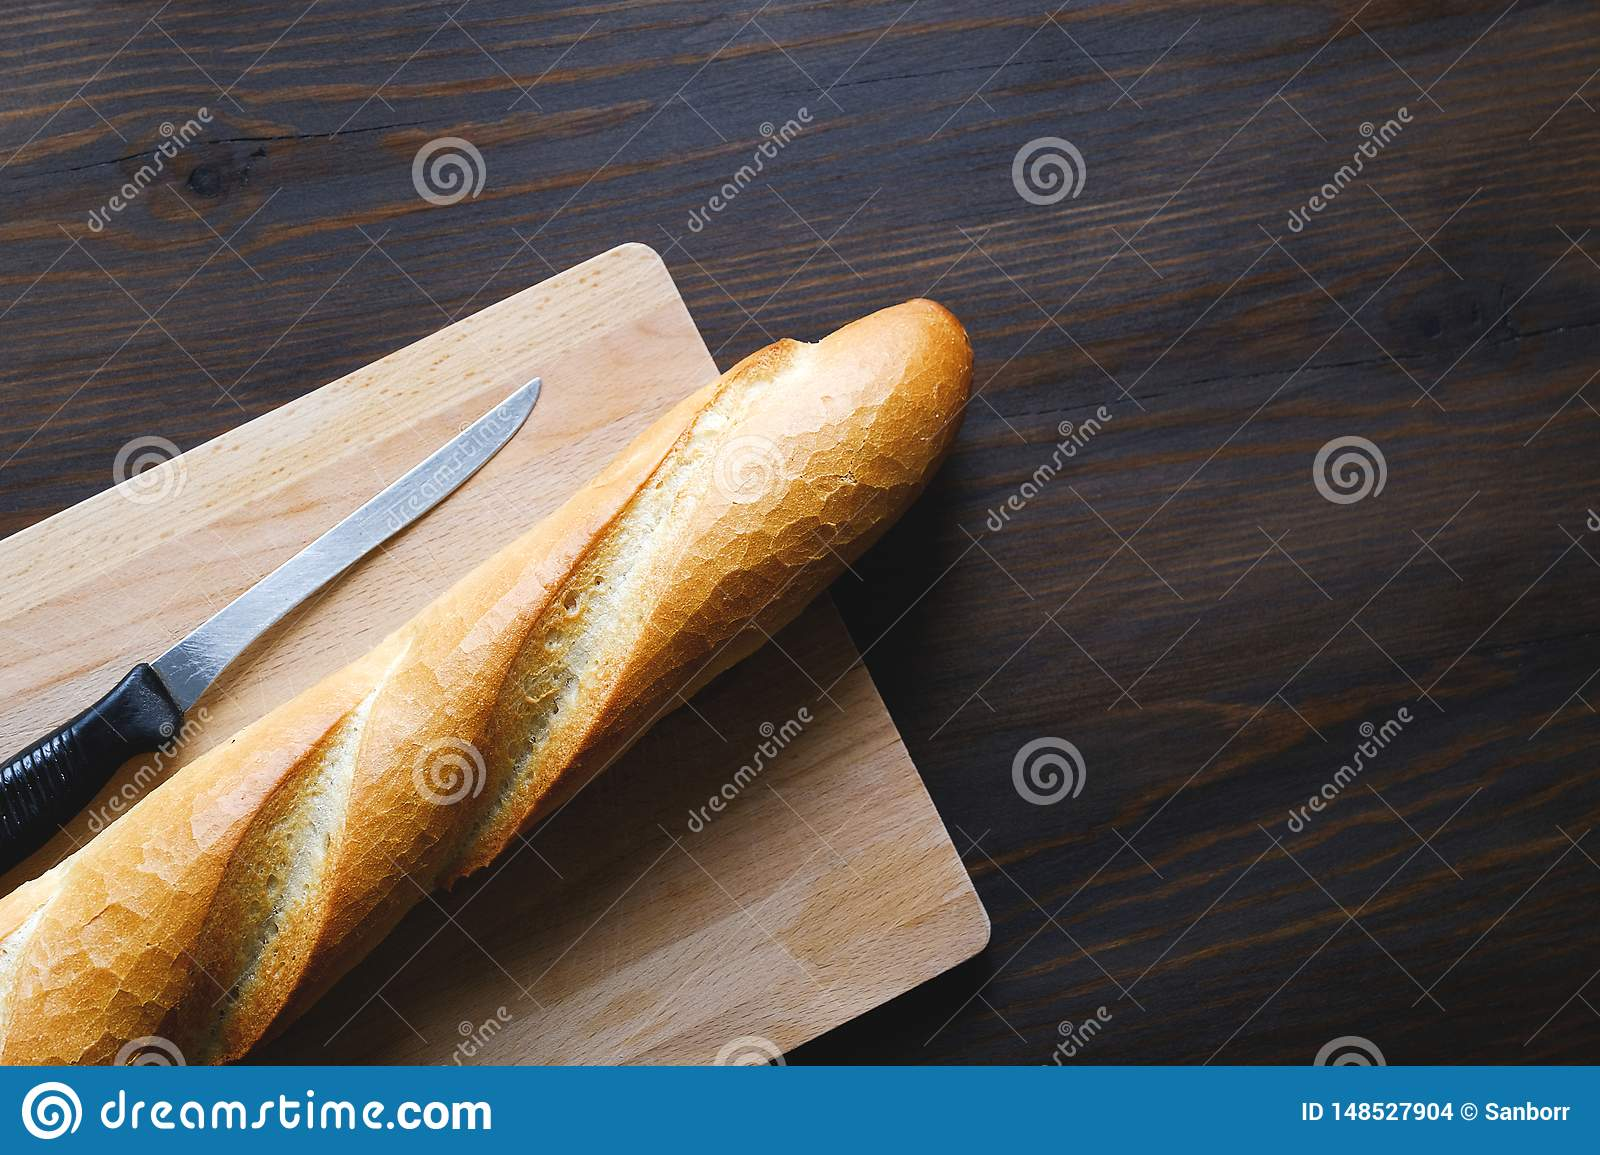 Freshly baked bread, kitchen knife with black plastic handle, cutting Board on a wooden table, close-up. Copy space for text. The